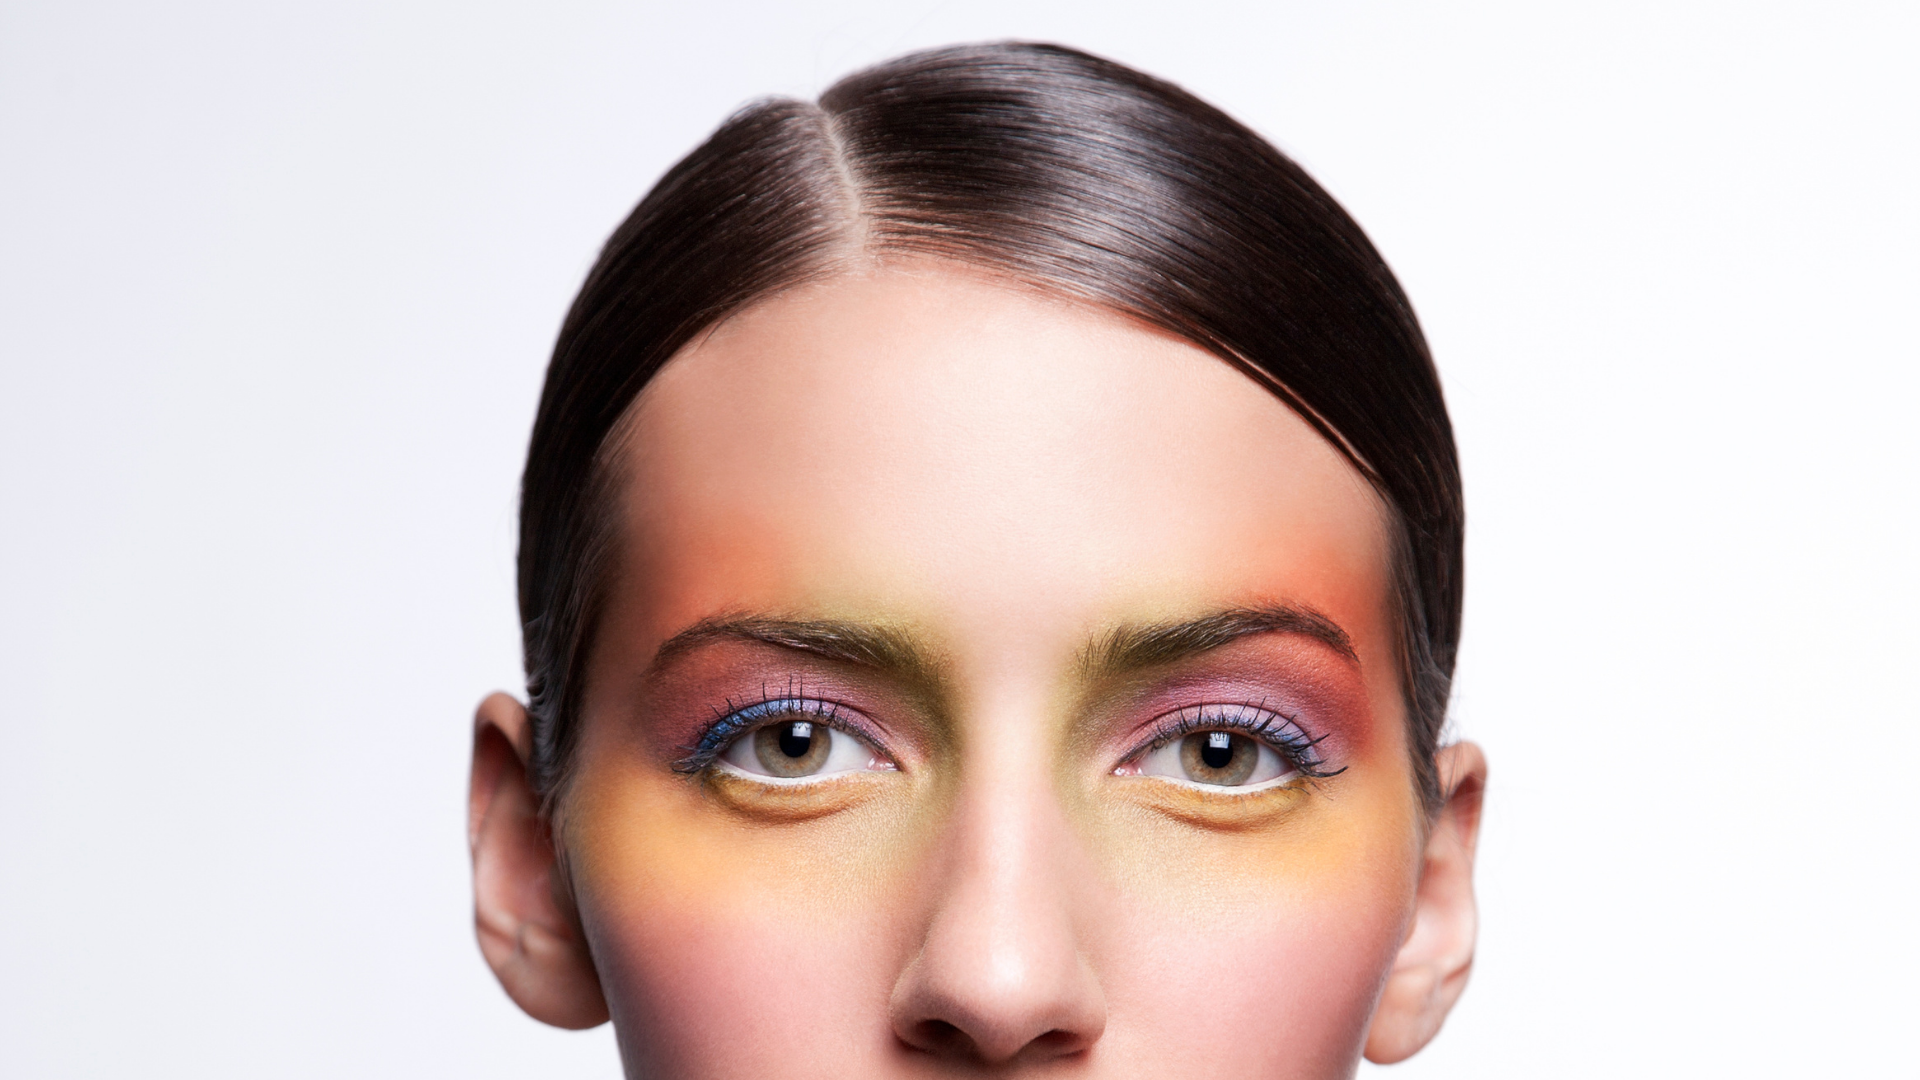 Under eyeshadow is going to be a beauty trend in 2022